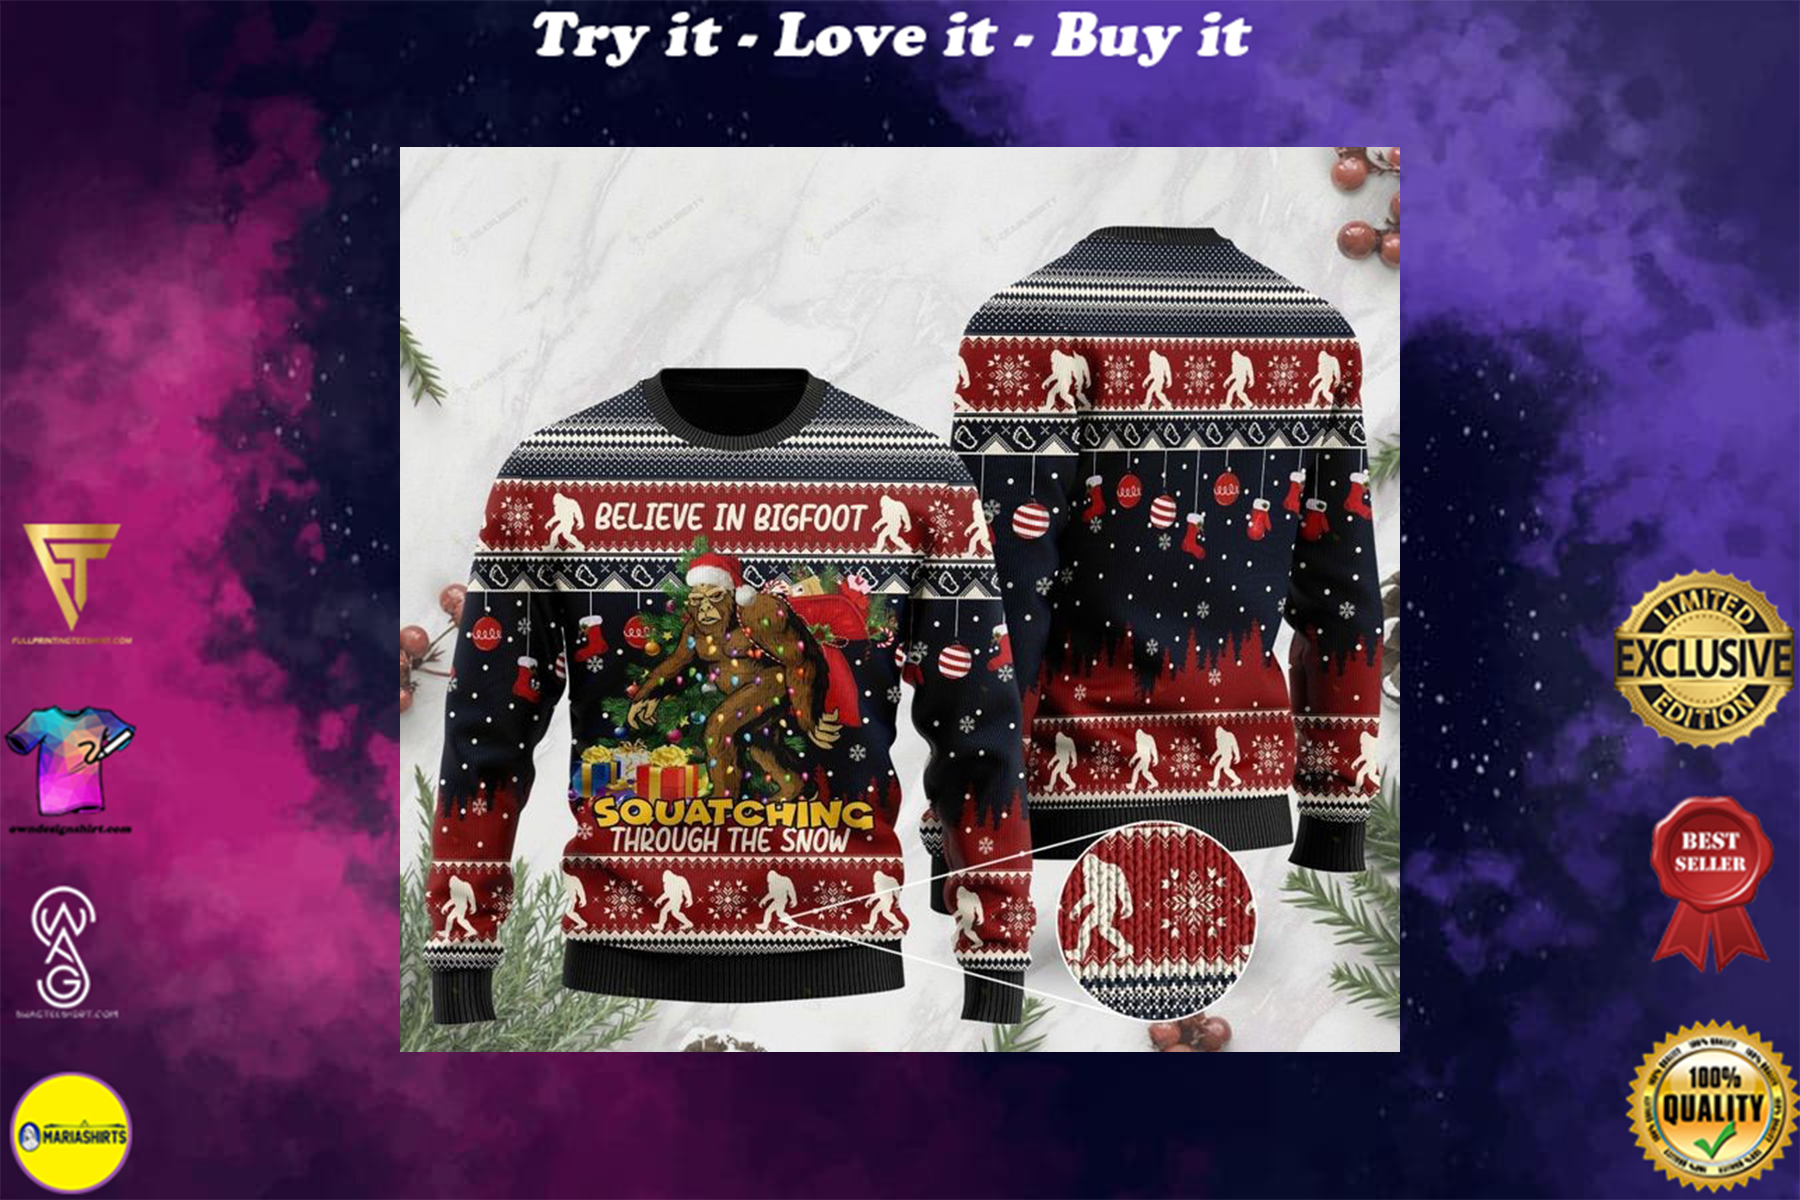 [special edition] believe in bigfoot squat ching through the snow ugly christmas sweater - maria